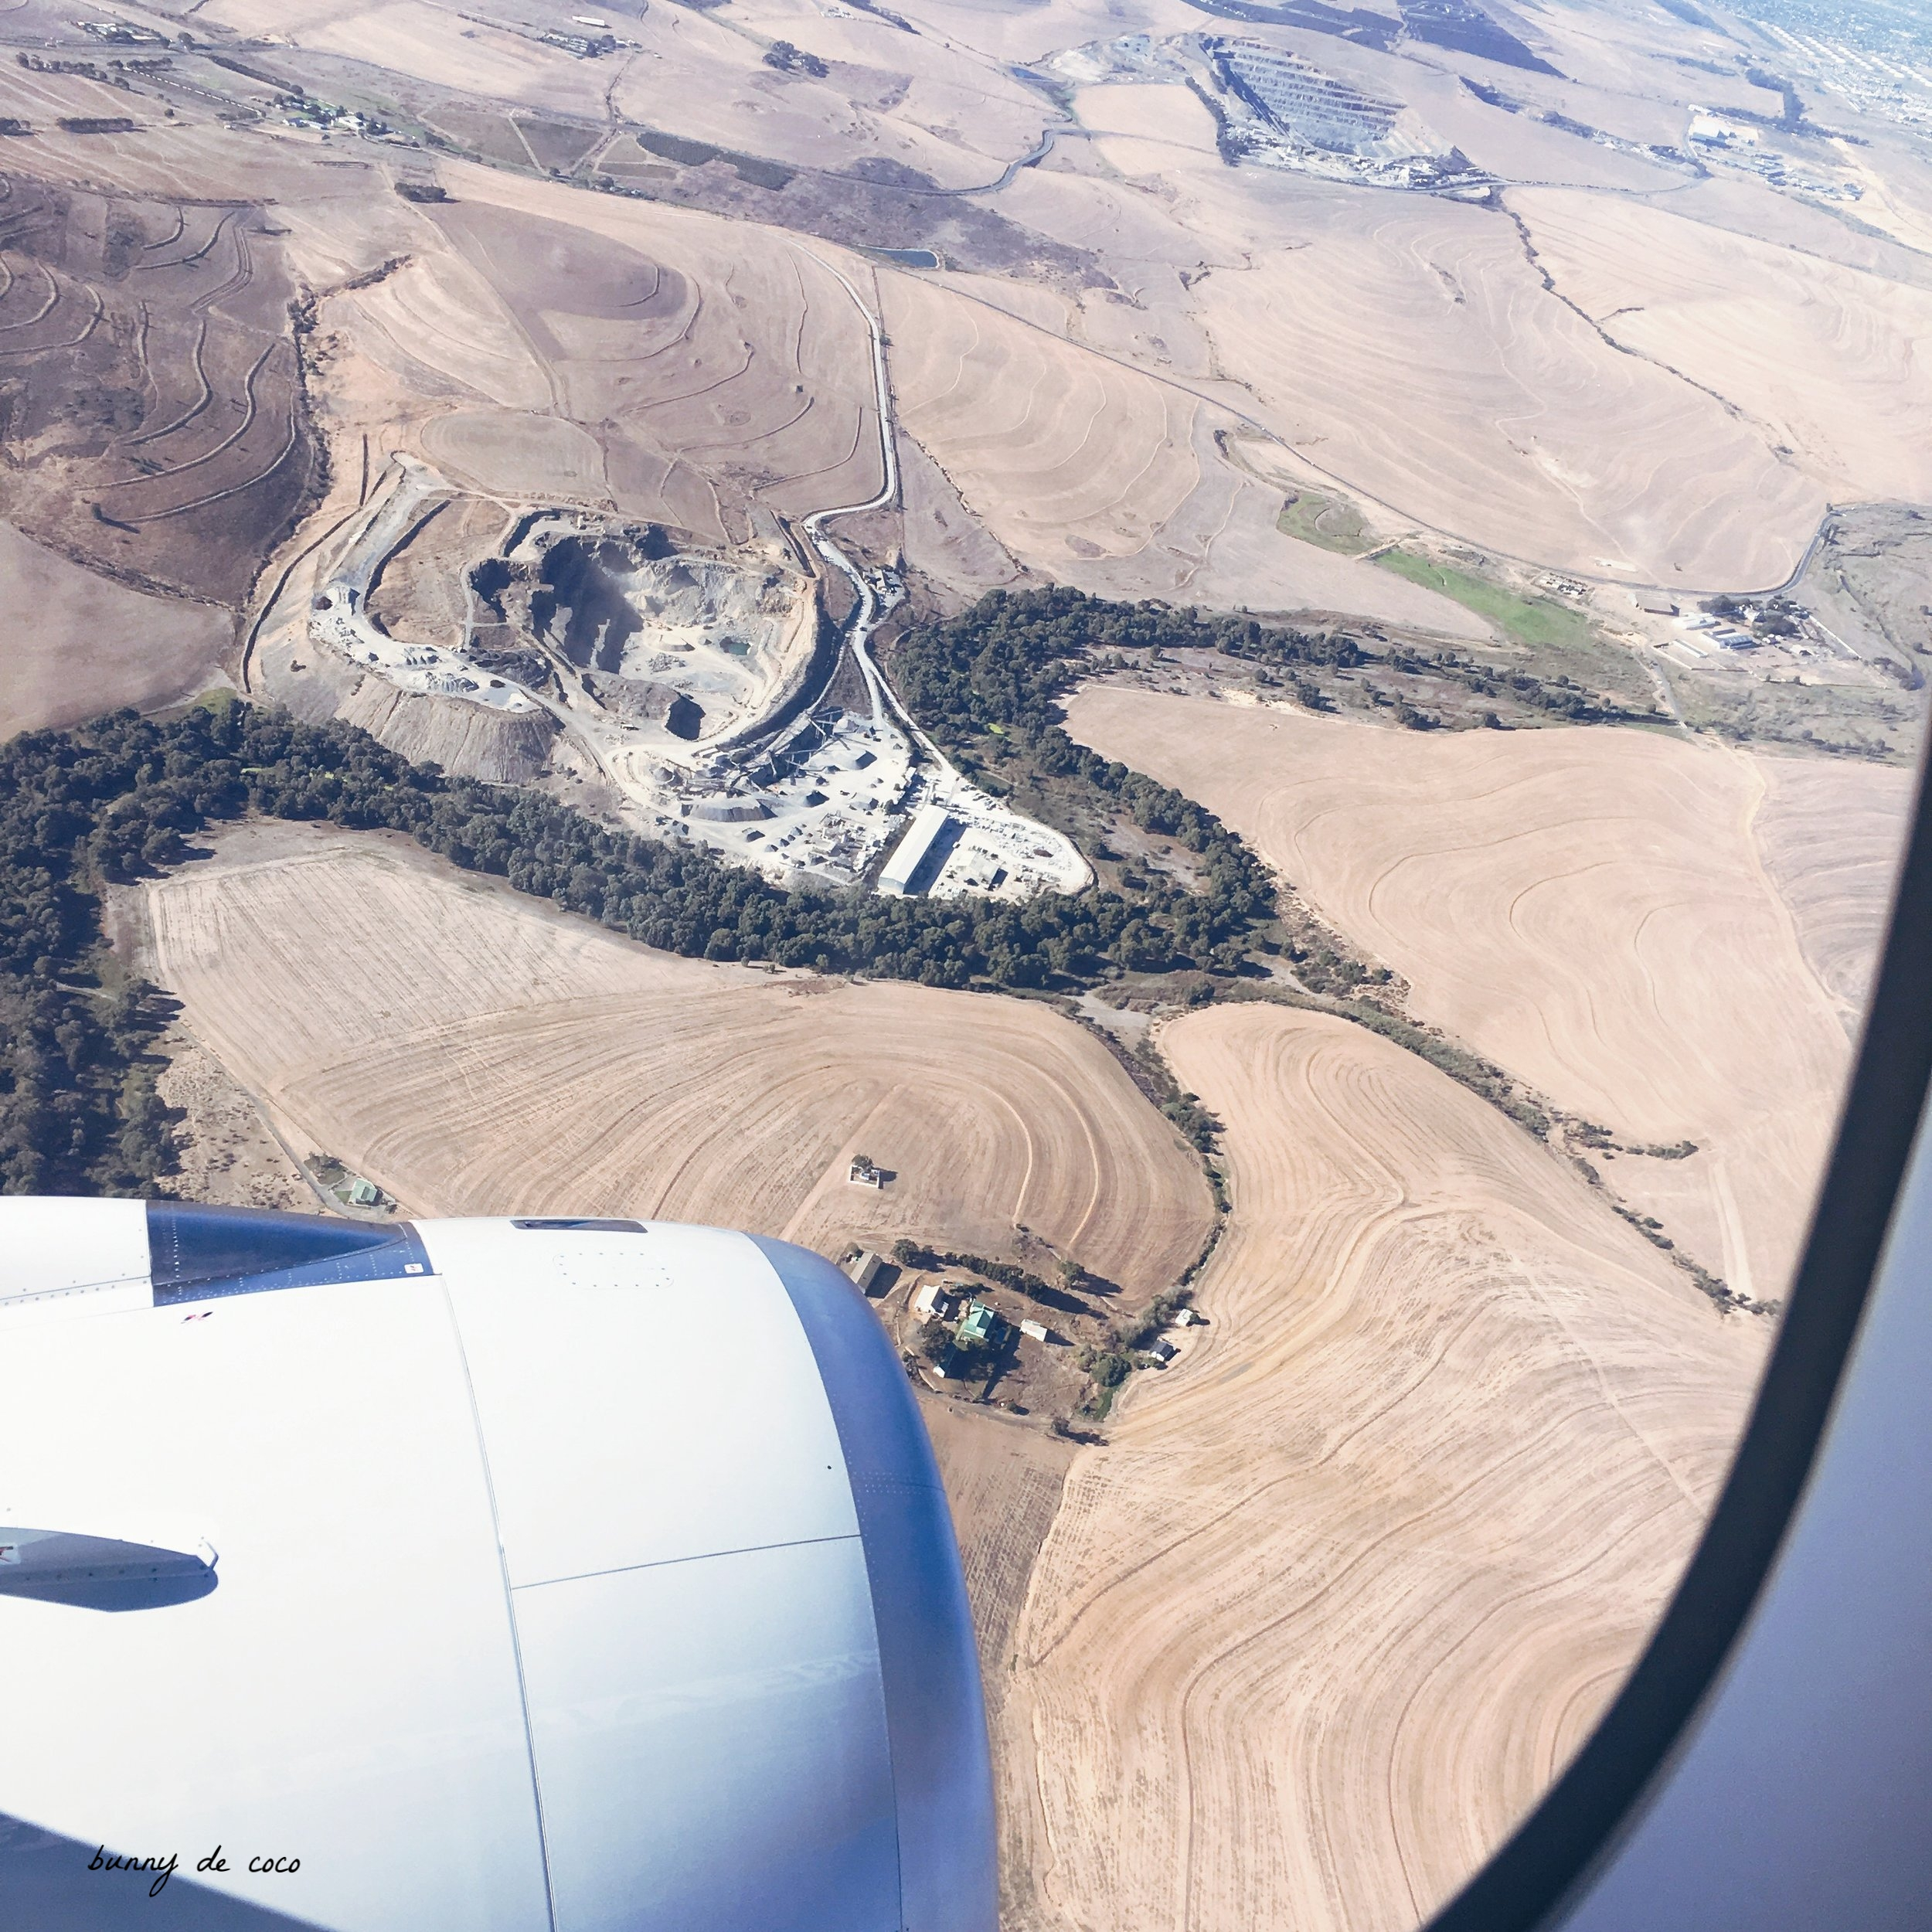 The view from above. Finally making our descent into Cape Town International Airport.